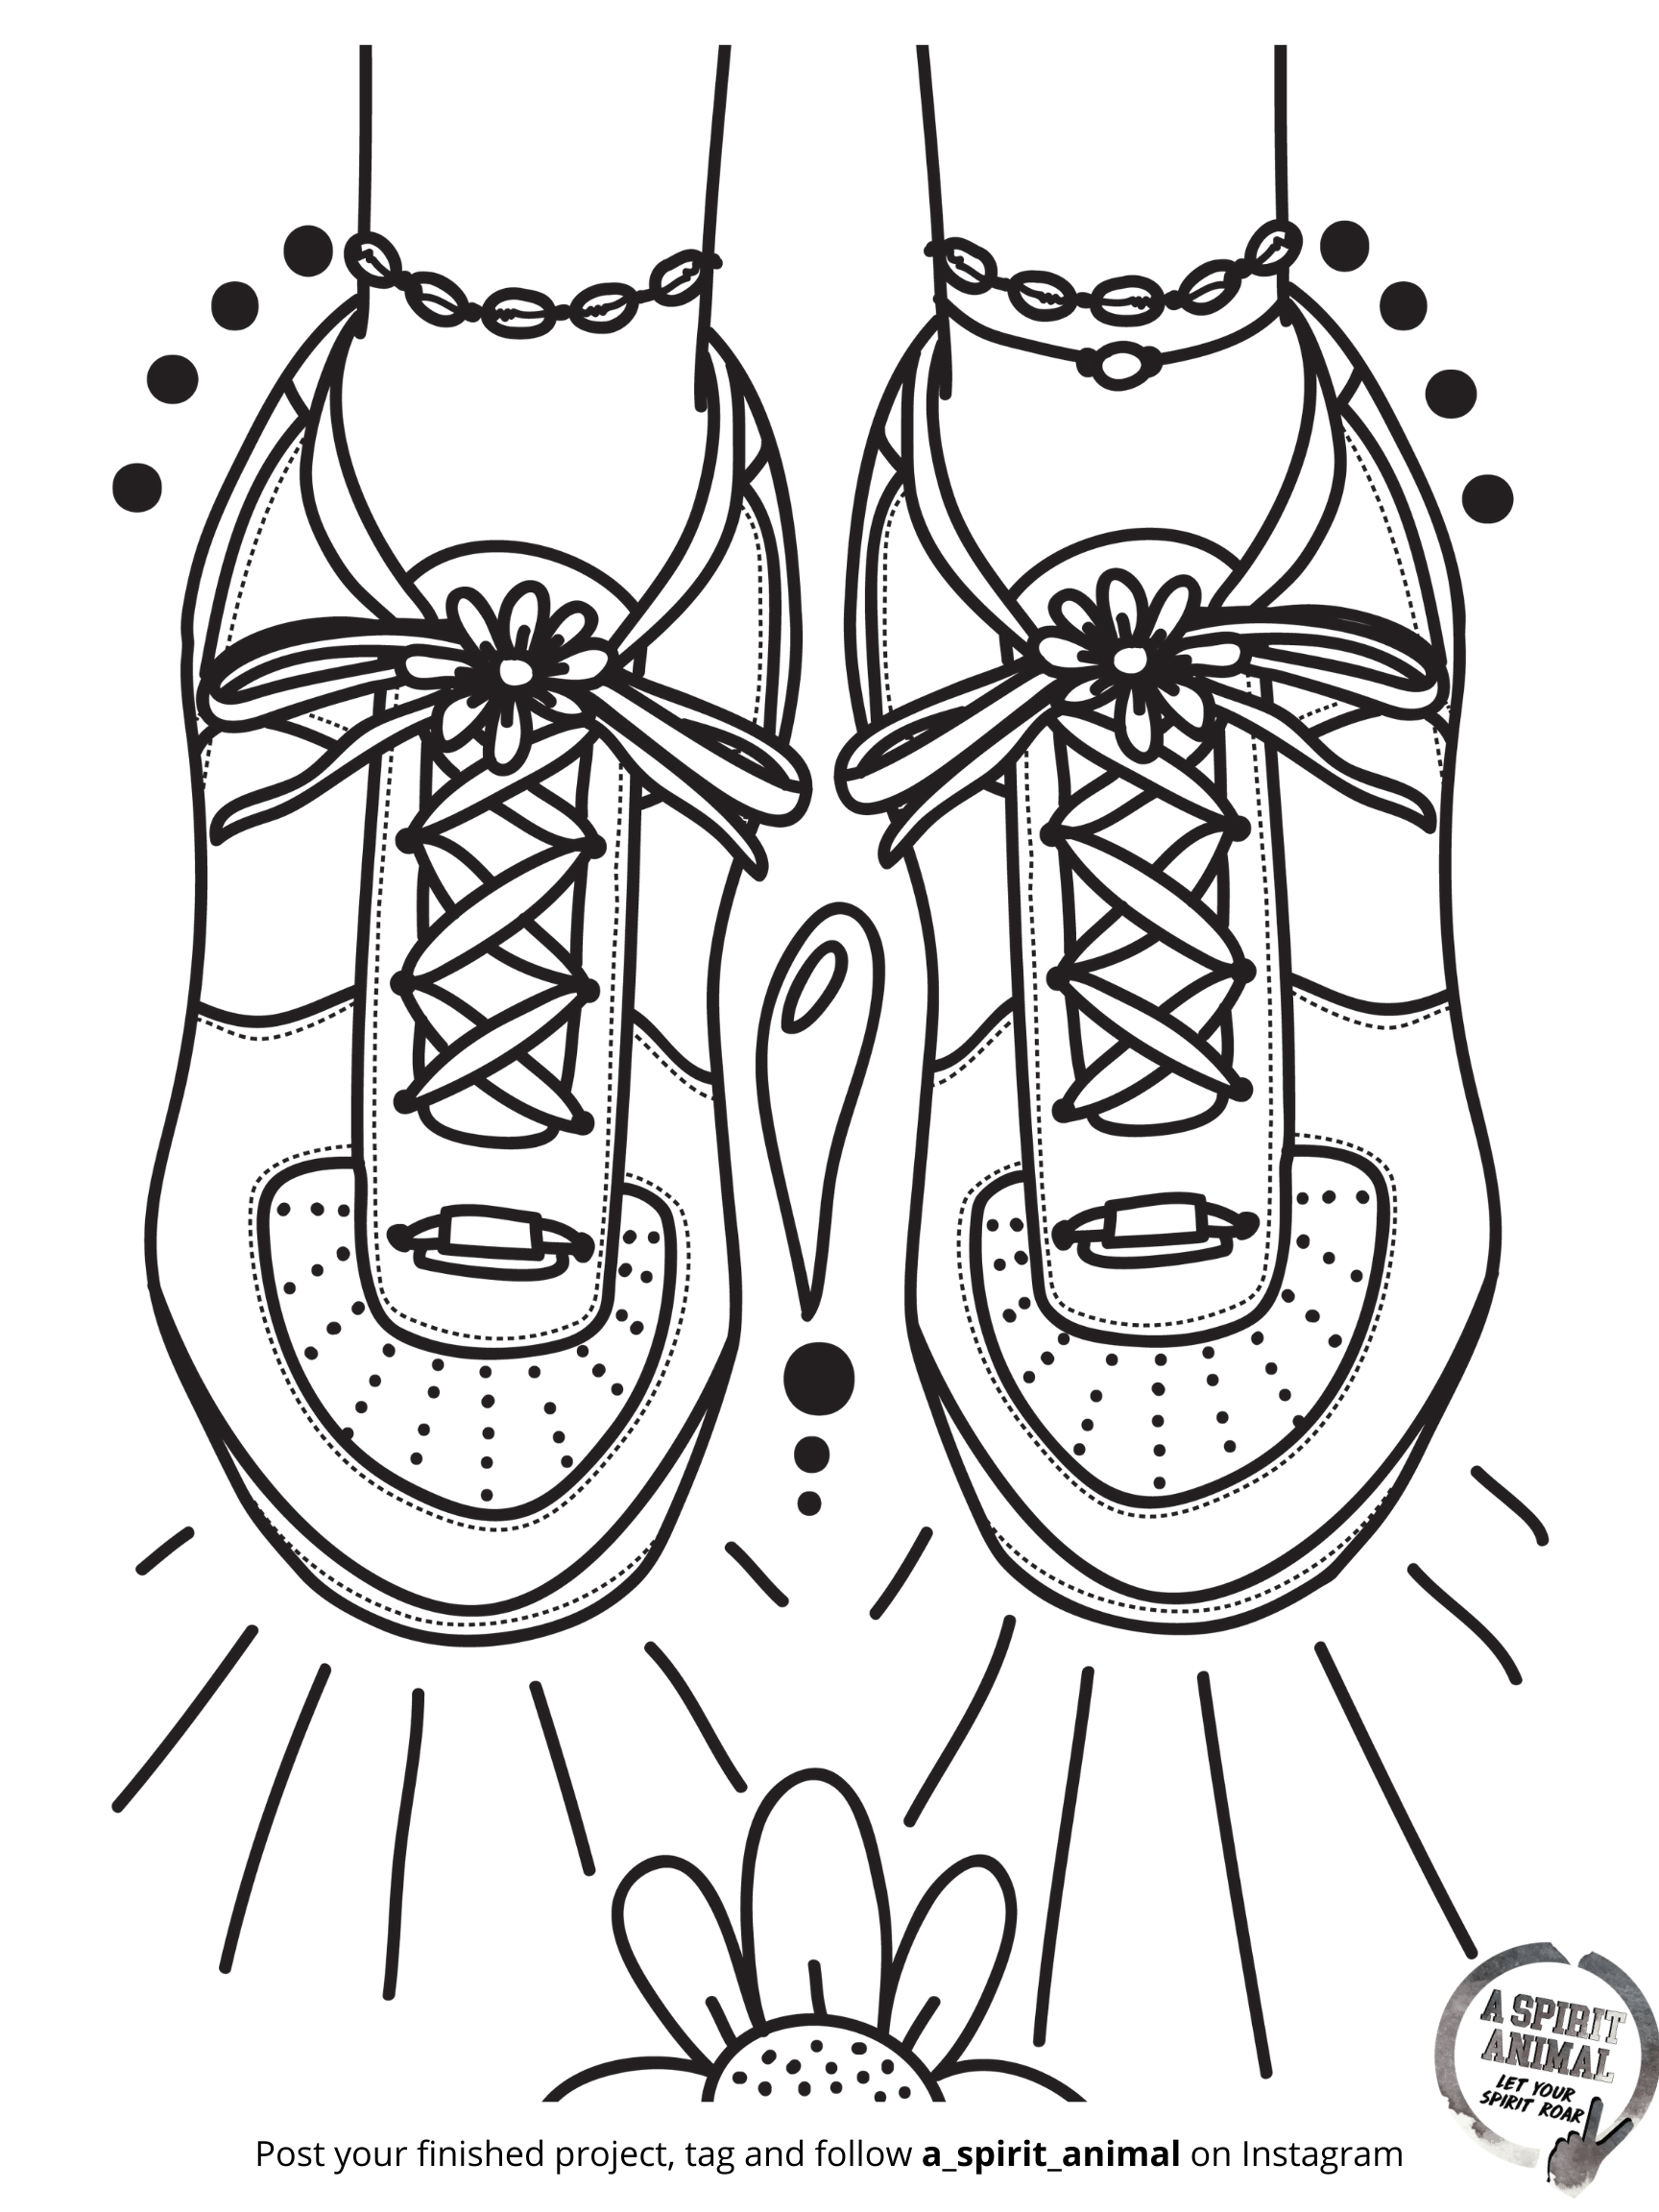 Air Force One Sneakers coloring page by a spirit animal - an online boutique for girls ages 6-106